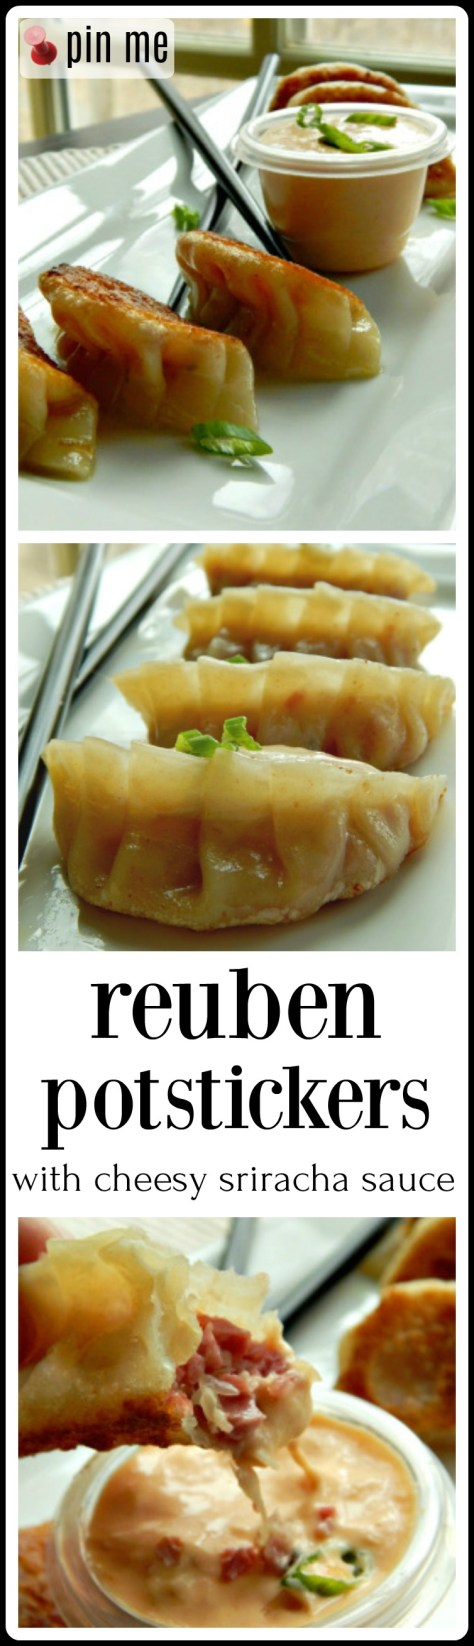 Reuben Potstickers: Well, you'll just have to try them to believe them!